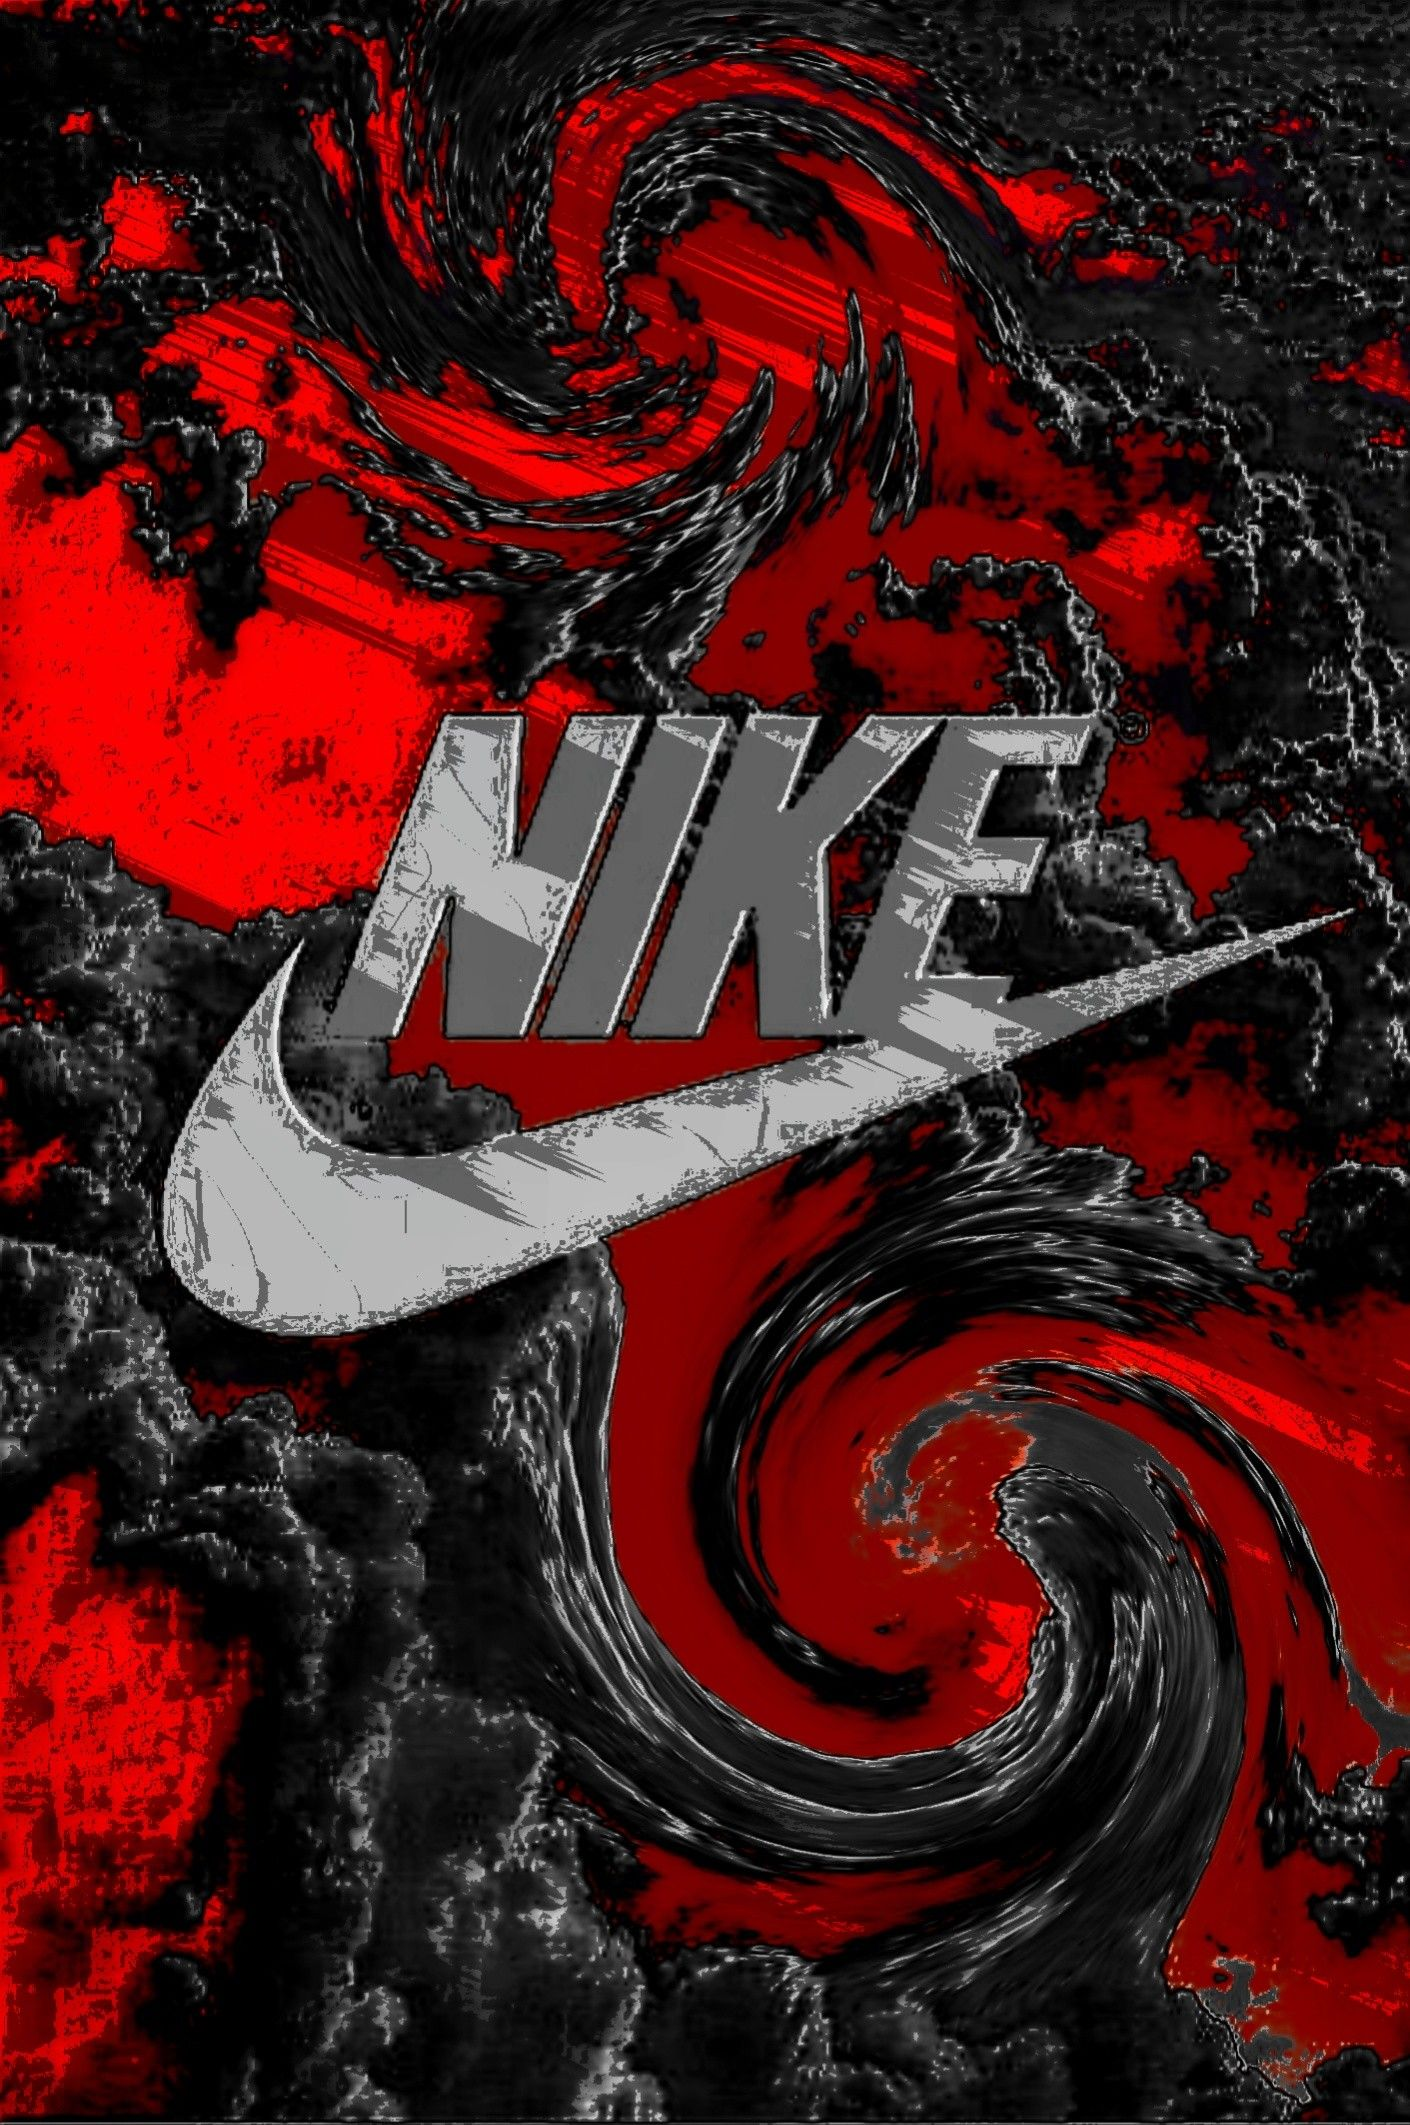 Pin By Hooter S Designs On Nike Wallpaper In 2020 Nike Wallpaper Cool Nike Wallpapers Nike Wallpaper Iphone